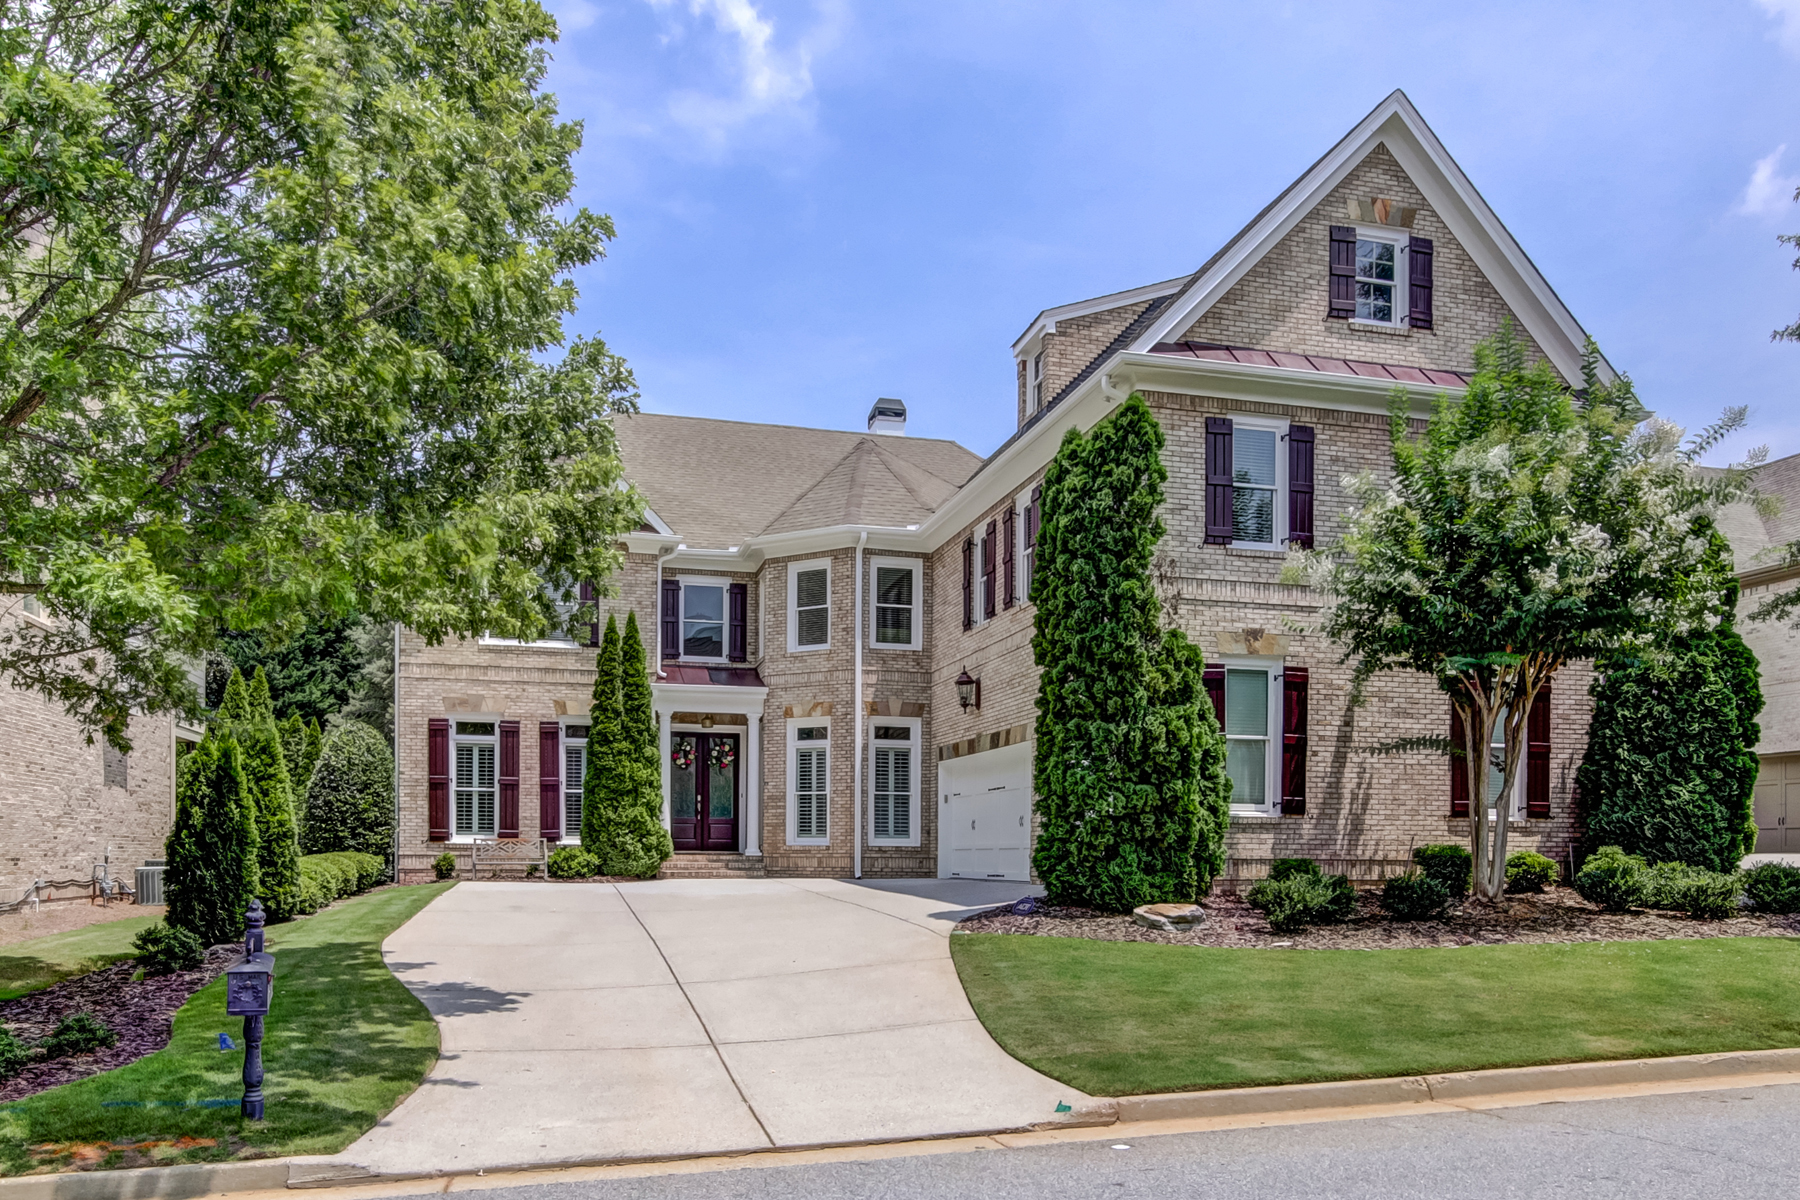 Single Family Home for Sale at Custom Built Home With Lots Of Upgrades 7937 Stratford Lane Sandy Springs, Georgia 30350 United States